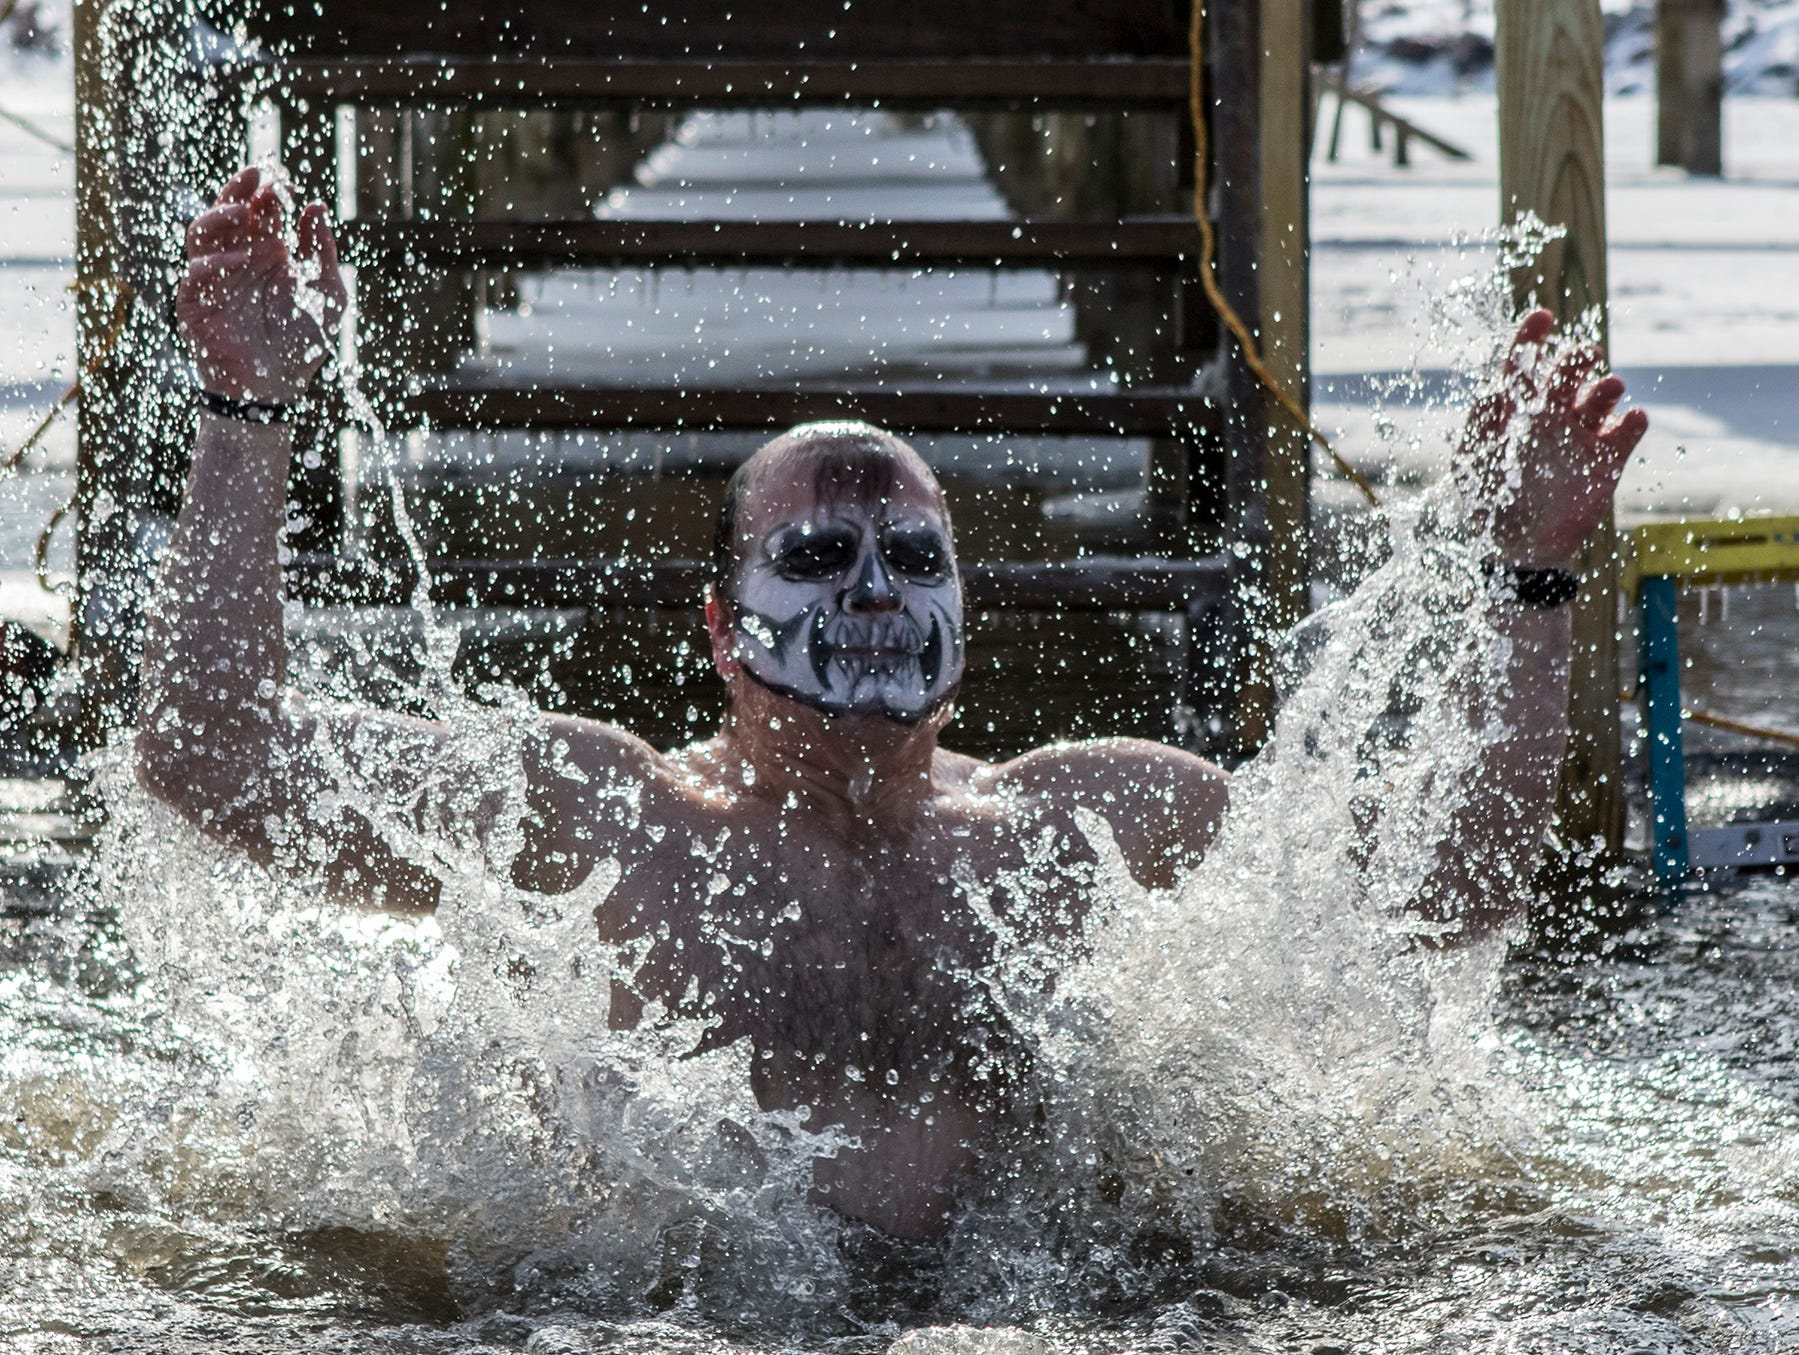 Ron Gillespie of Bexley, emerges from the water at Buckeye Lake after jumping in Sunday in 20 degree weather. Before jumping Gillespie shouted out this was the dumbest thing he'd ever done. Around 20 people walked down the pier at Buckeye Lake Winery to jump into Buckeye Lake Sunday for the annual Polar Plunge. Crowds gathered on the lake around an opening cut into the ice to cheer on those brave enough top jump.